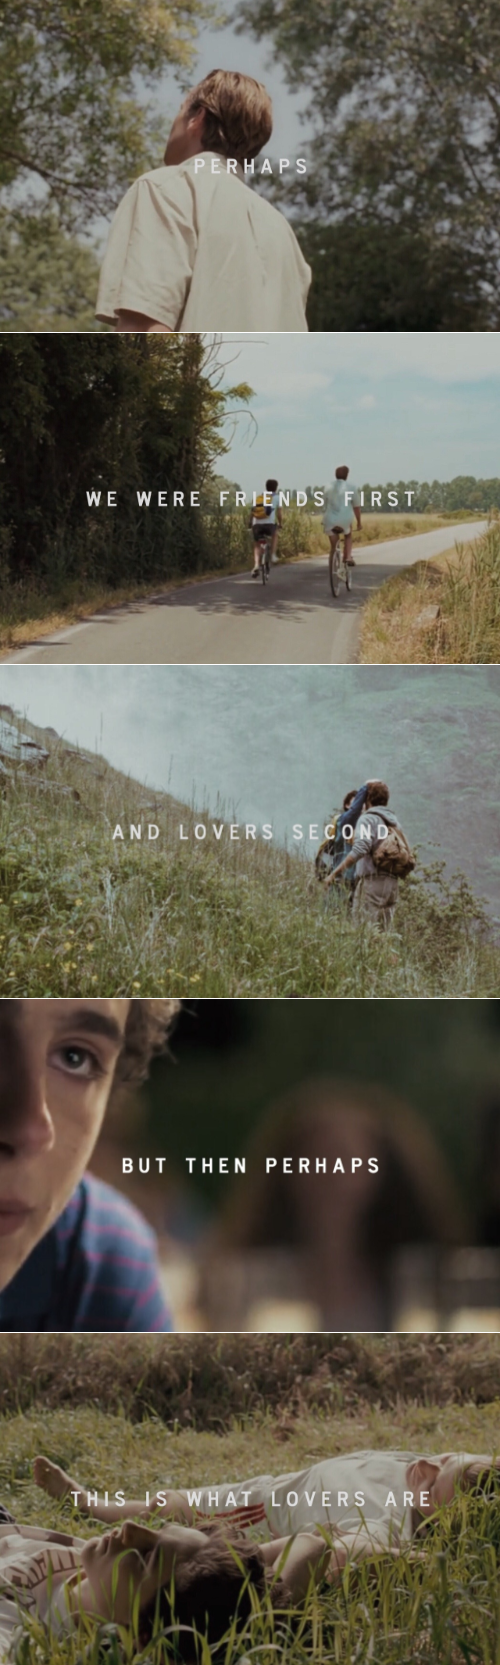 We had found the stars, you and I. And this chance comes only once. // Call  Me By Your Name (2017) dir. Luca Guadagnino